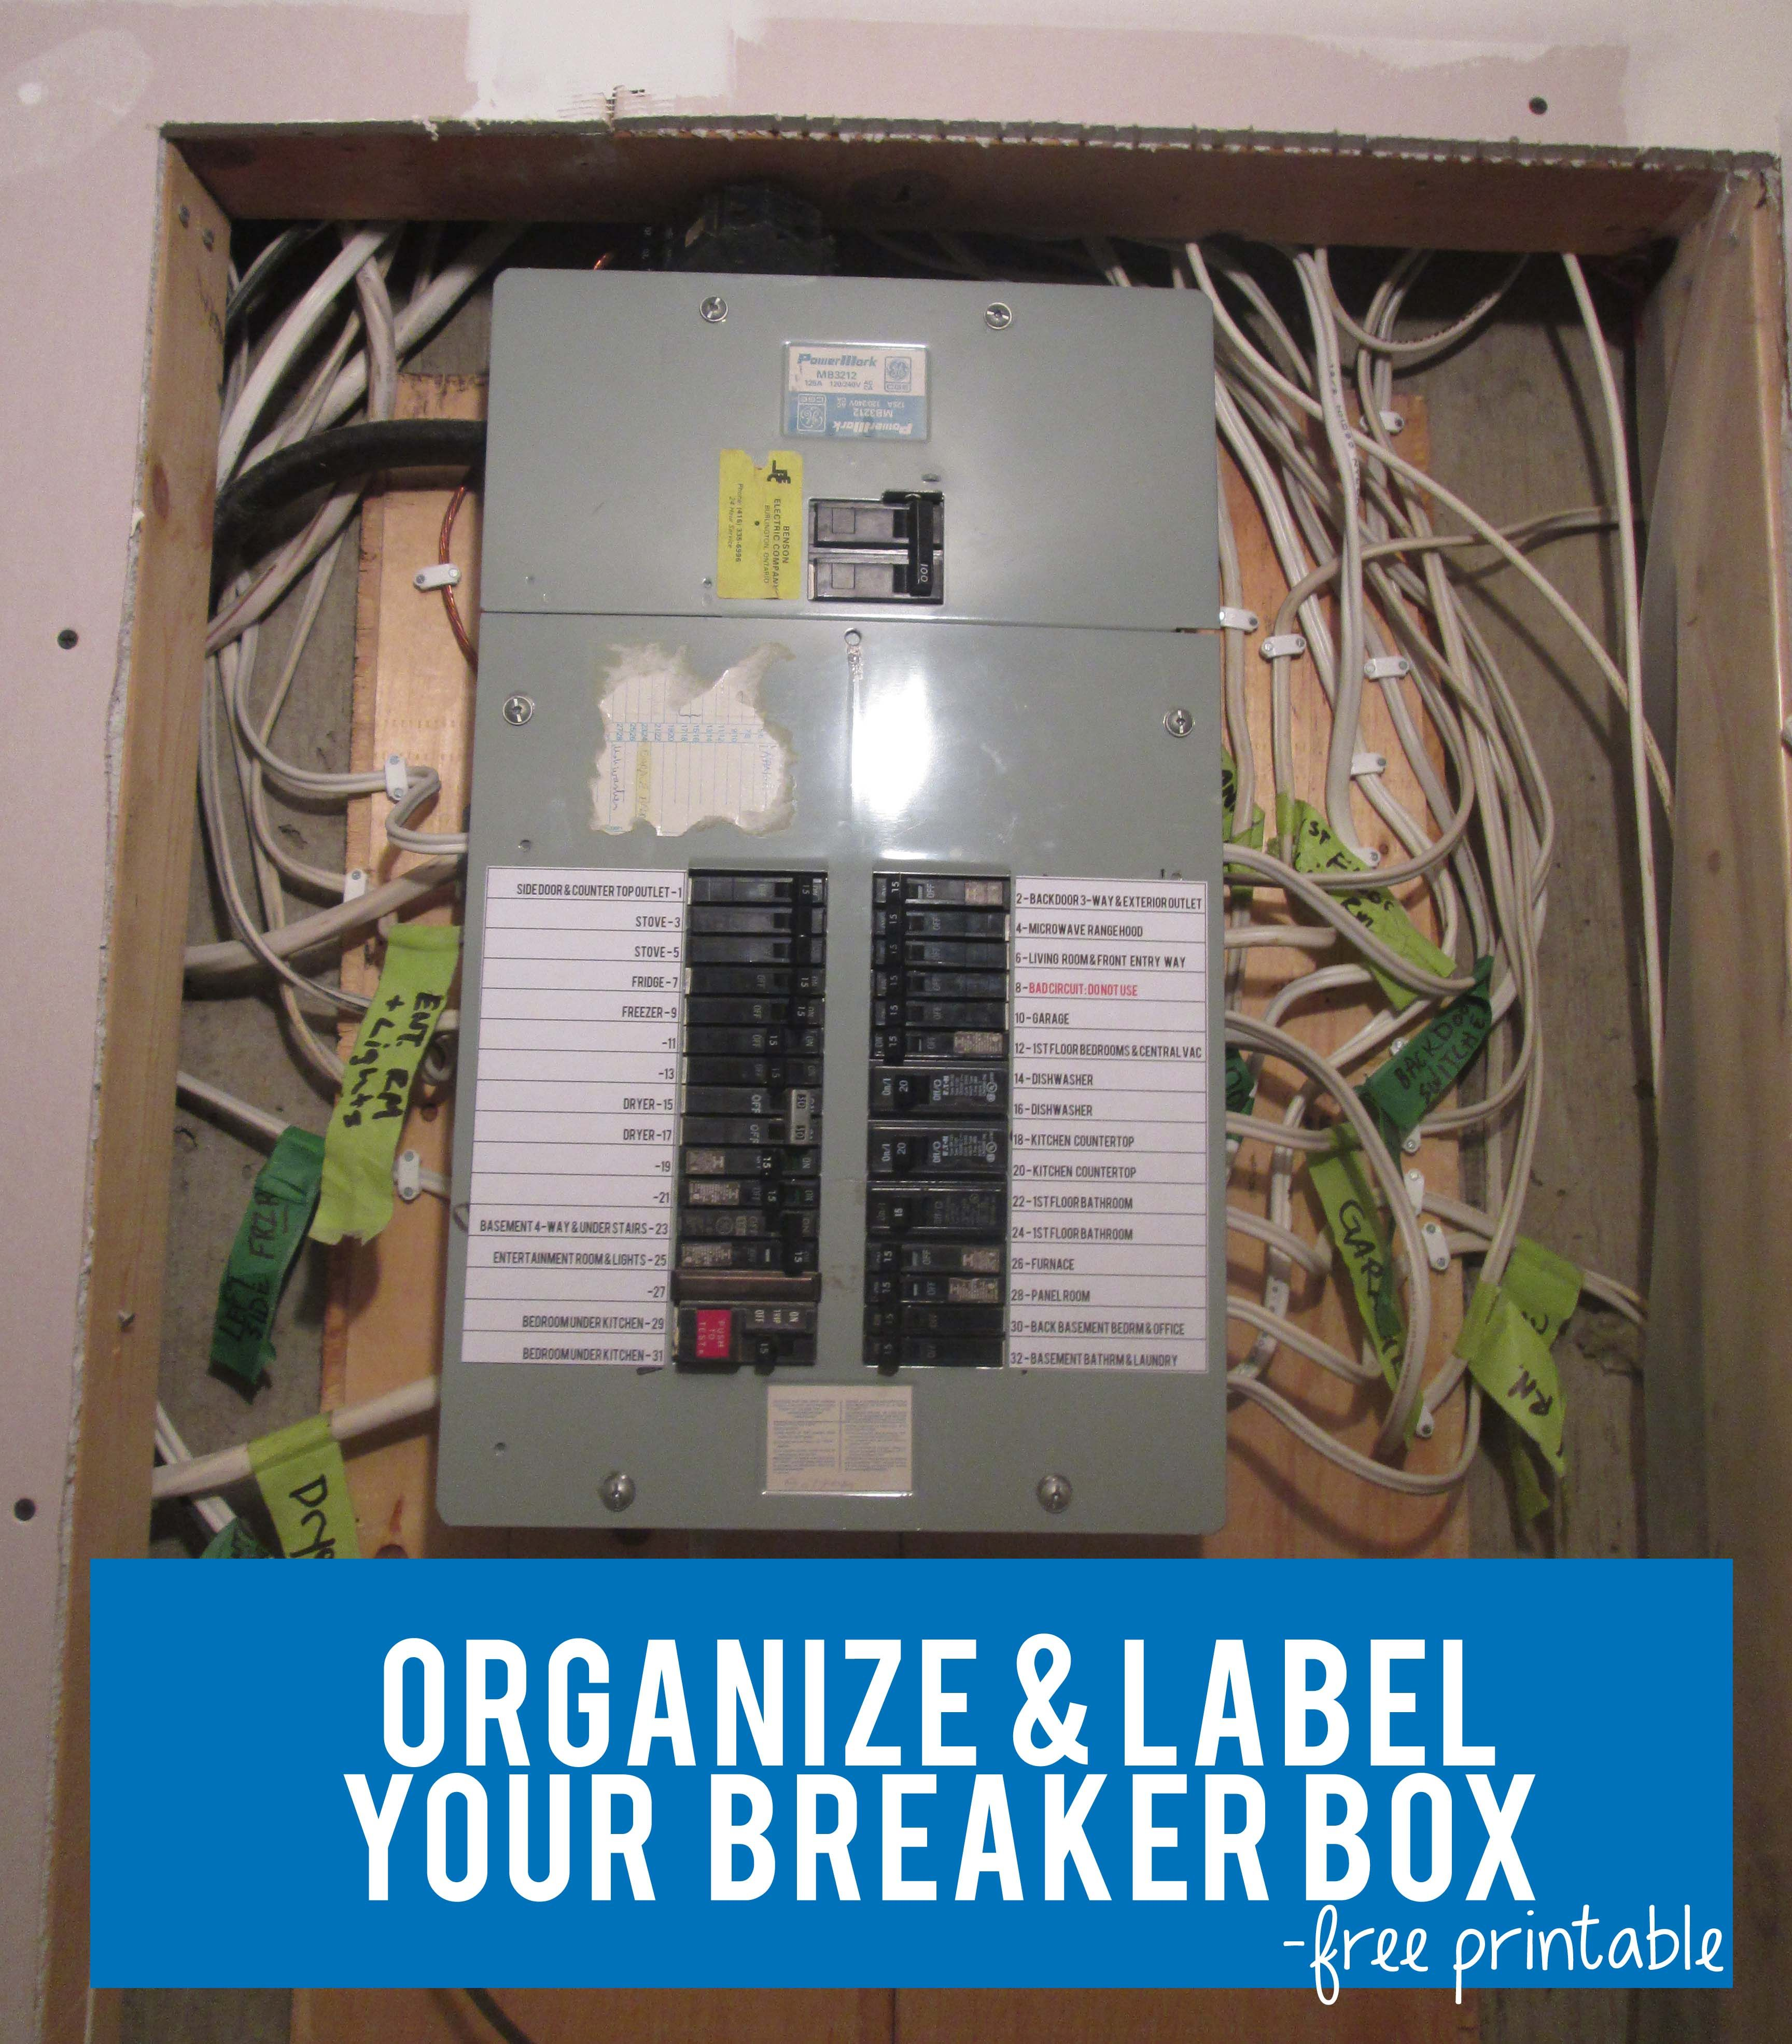 Organize Label Your Circut Breaker Box With Free Circuit Trip Of A Electrical Home Together Printable